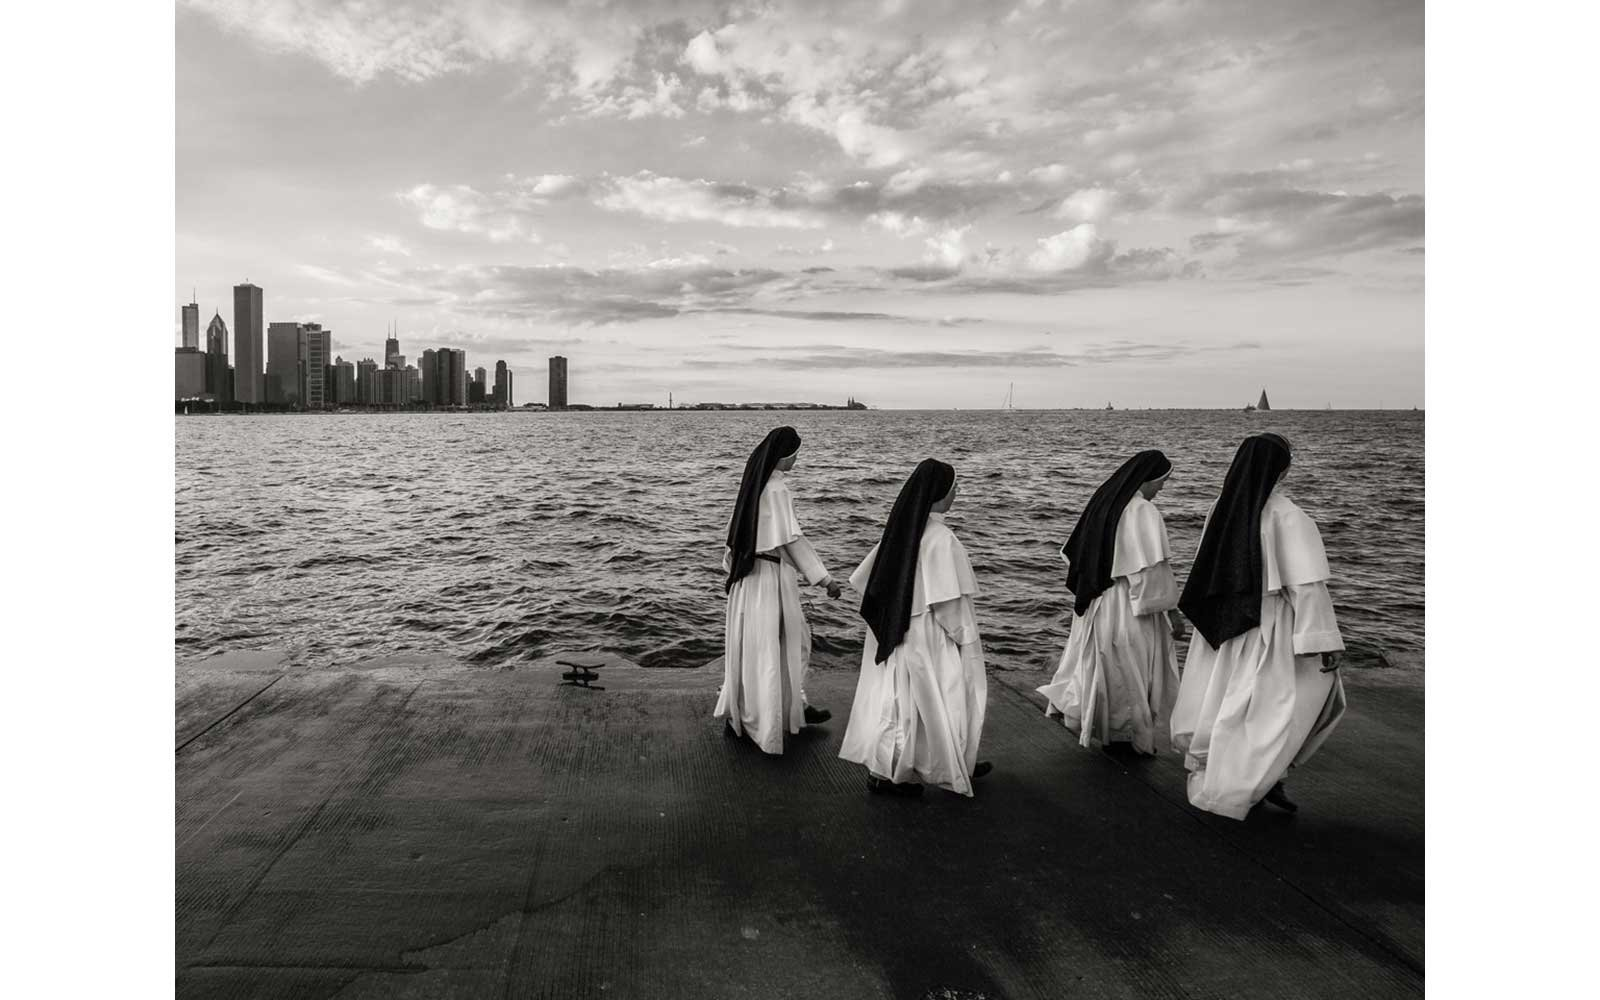 Nuns walking in Chicago